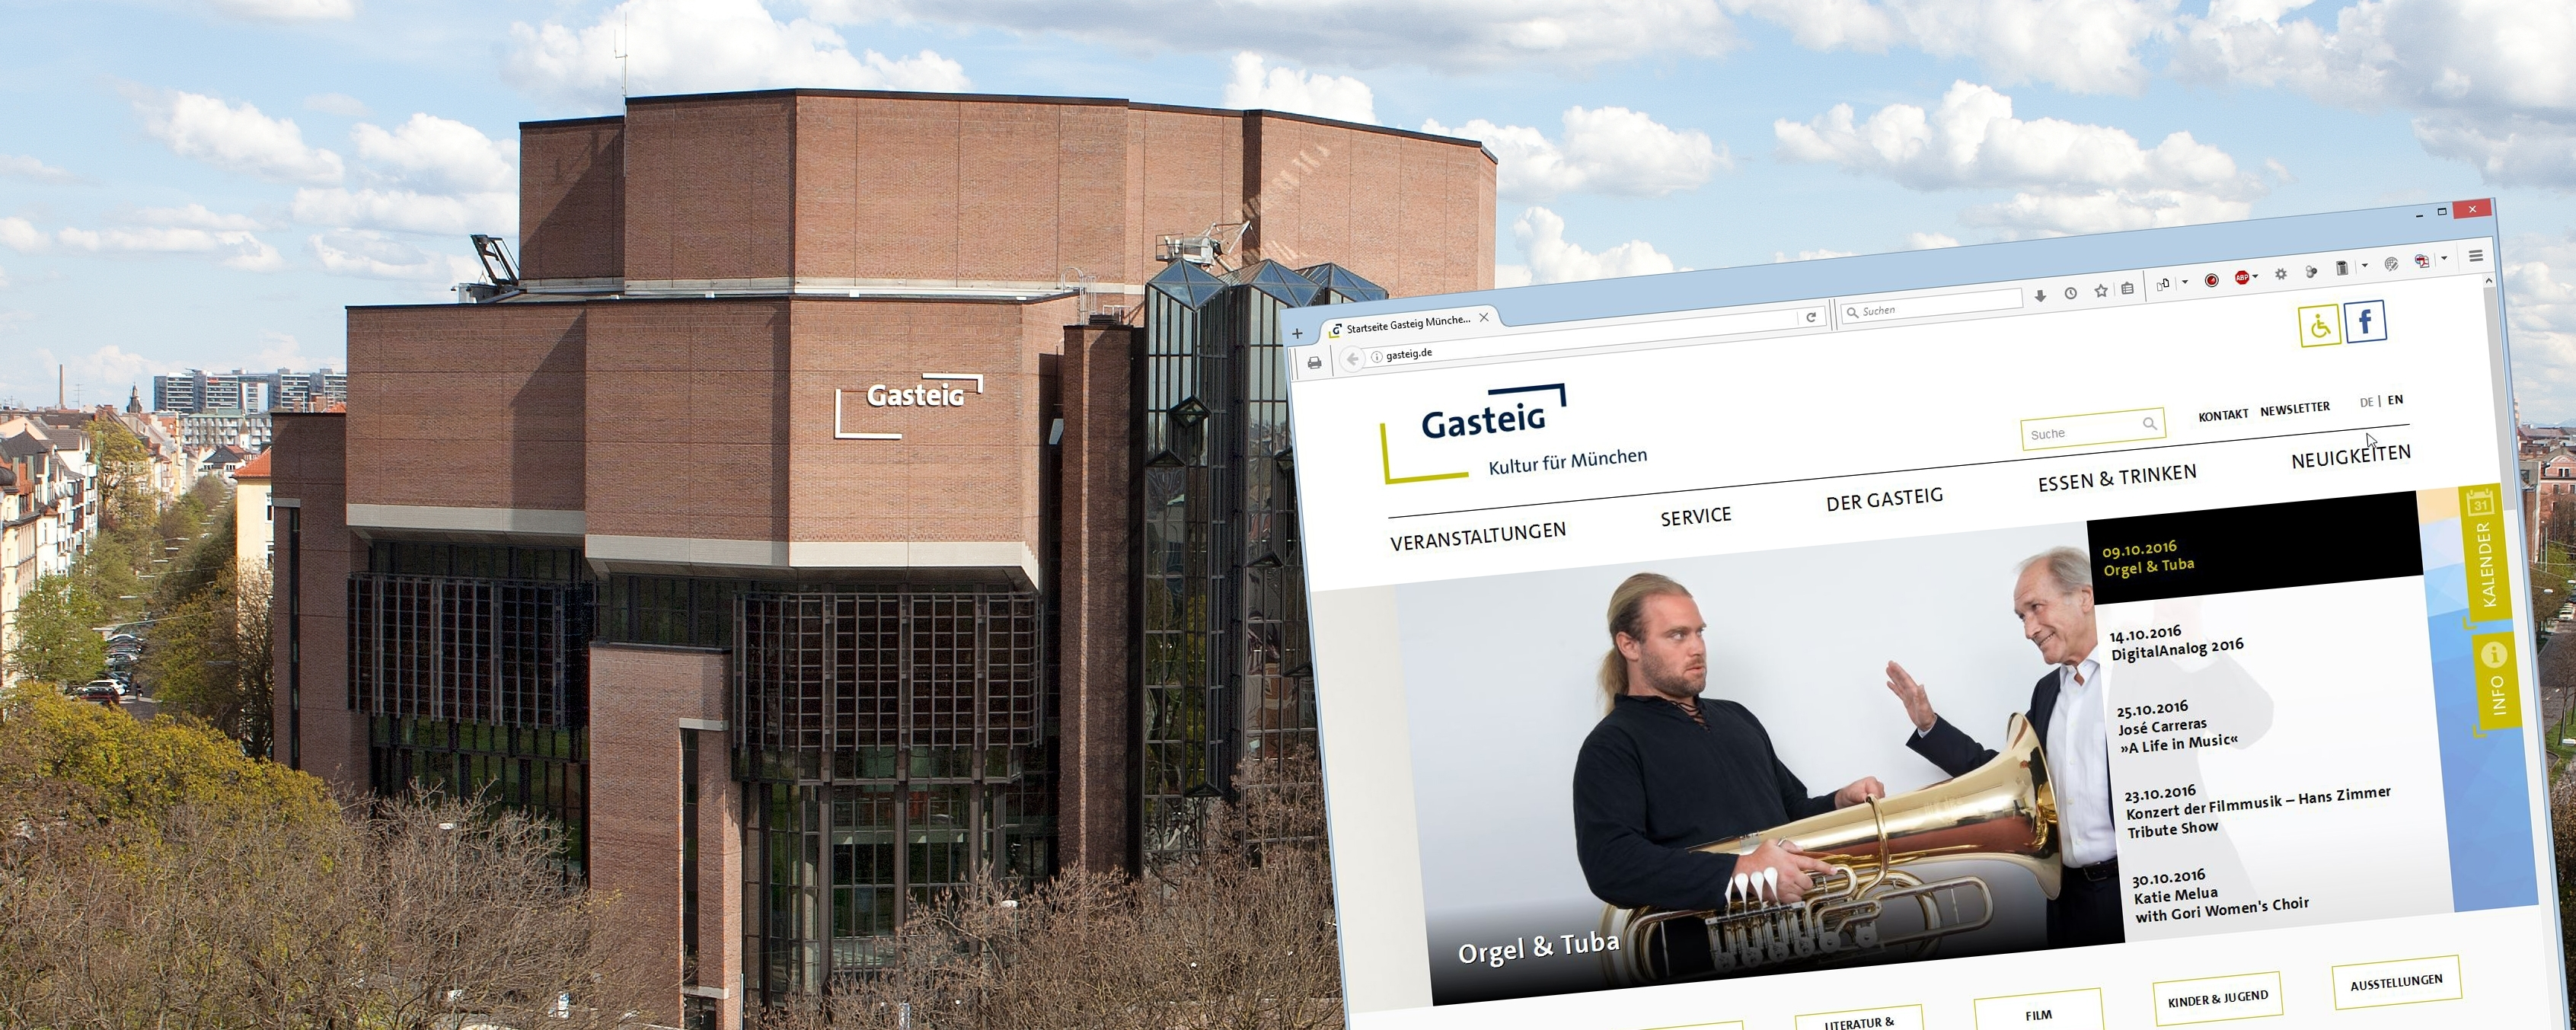 Welcome to the Gasteig!